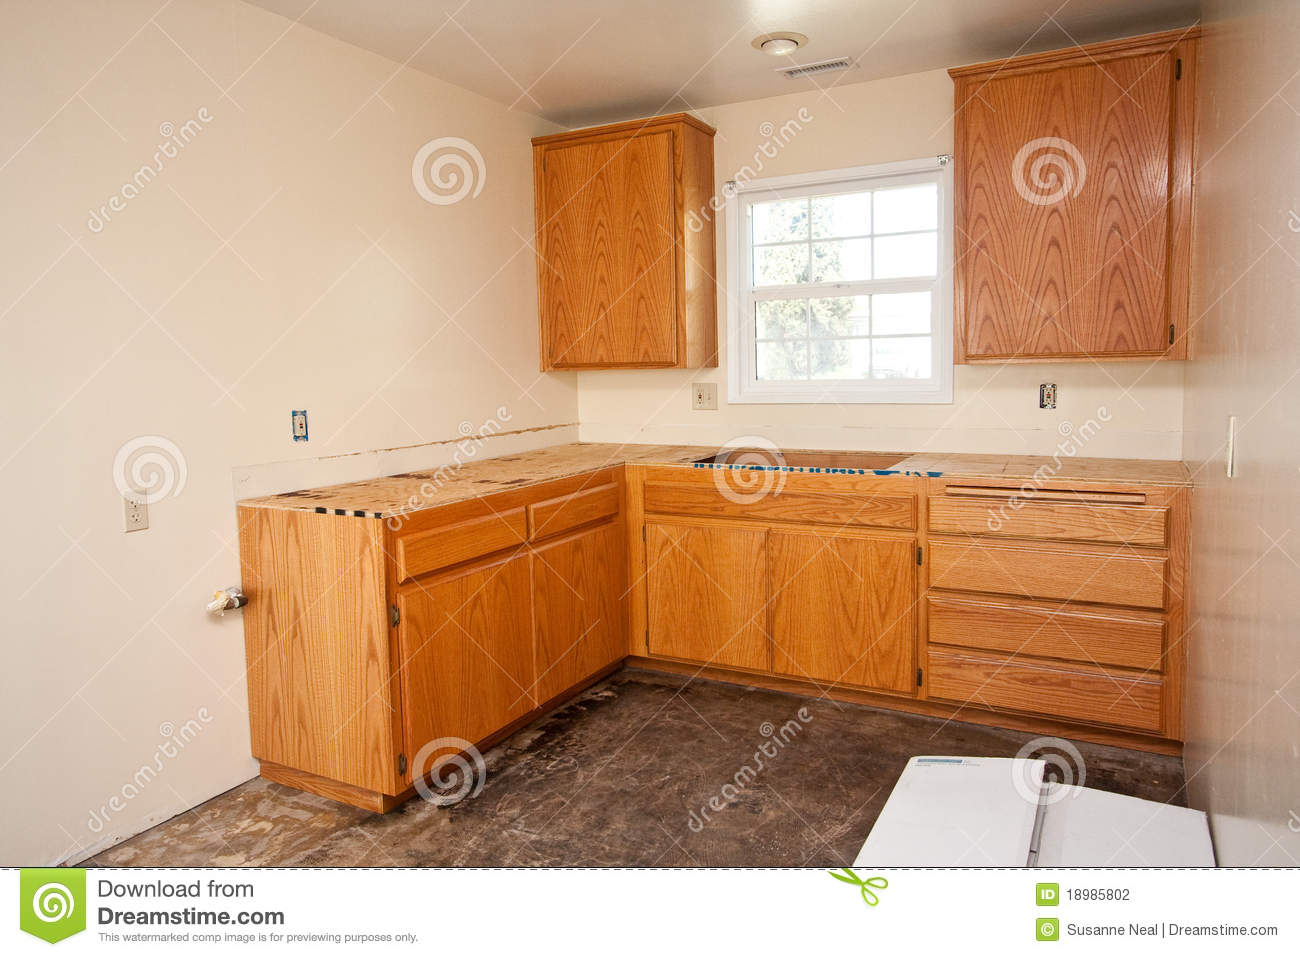 Kitchen Cabinets Without Countertop Stock Photo - Image of ...